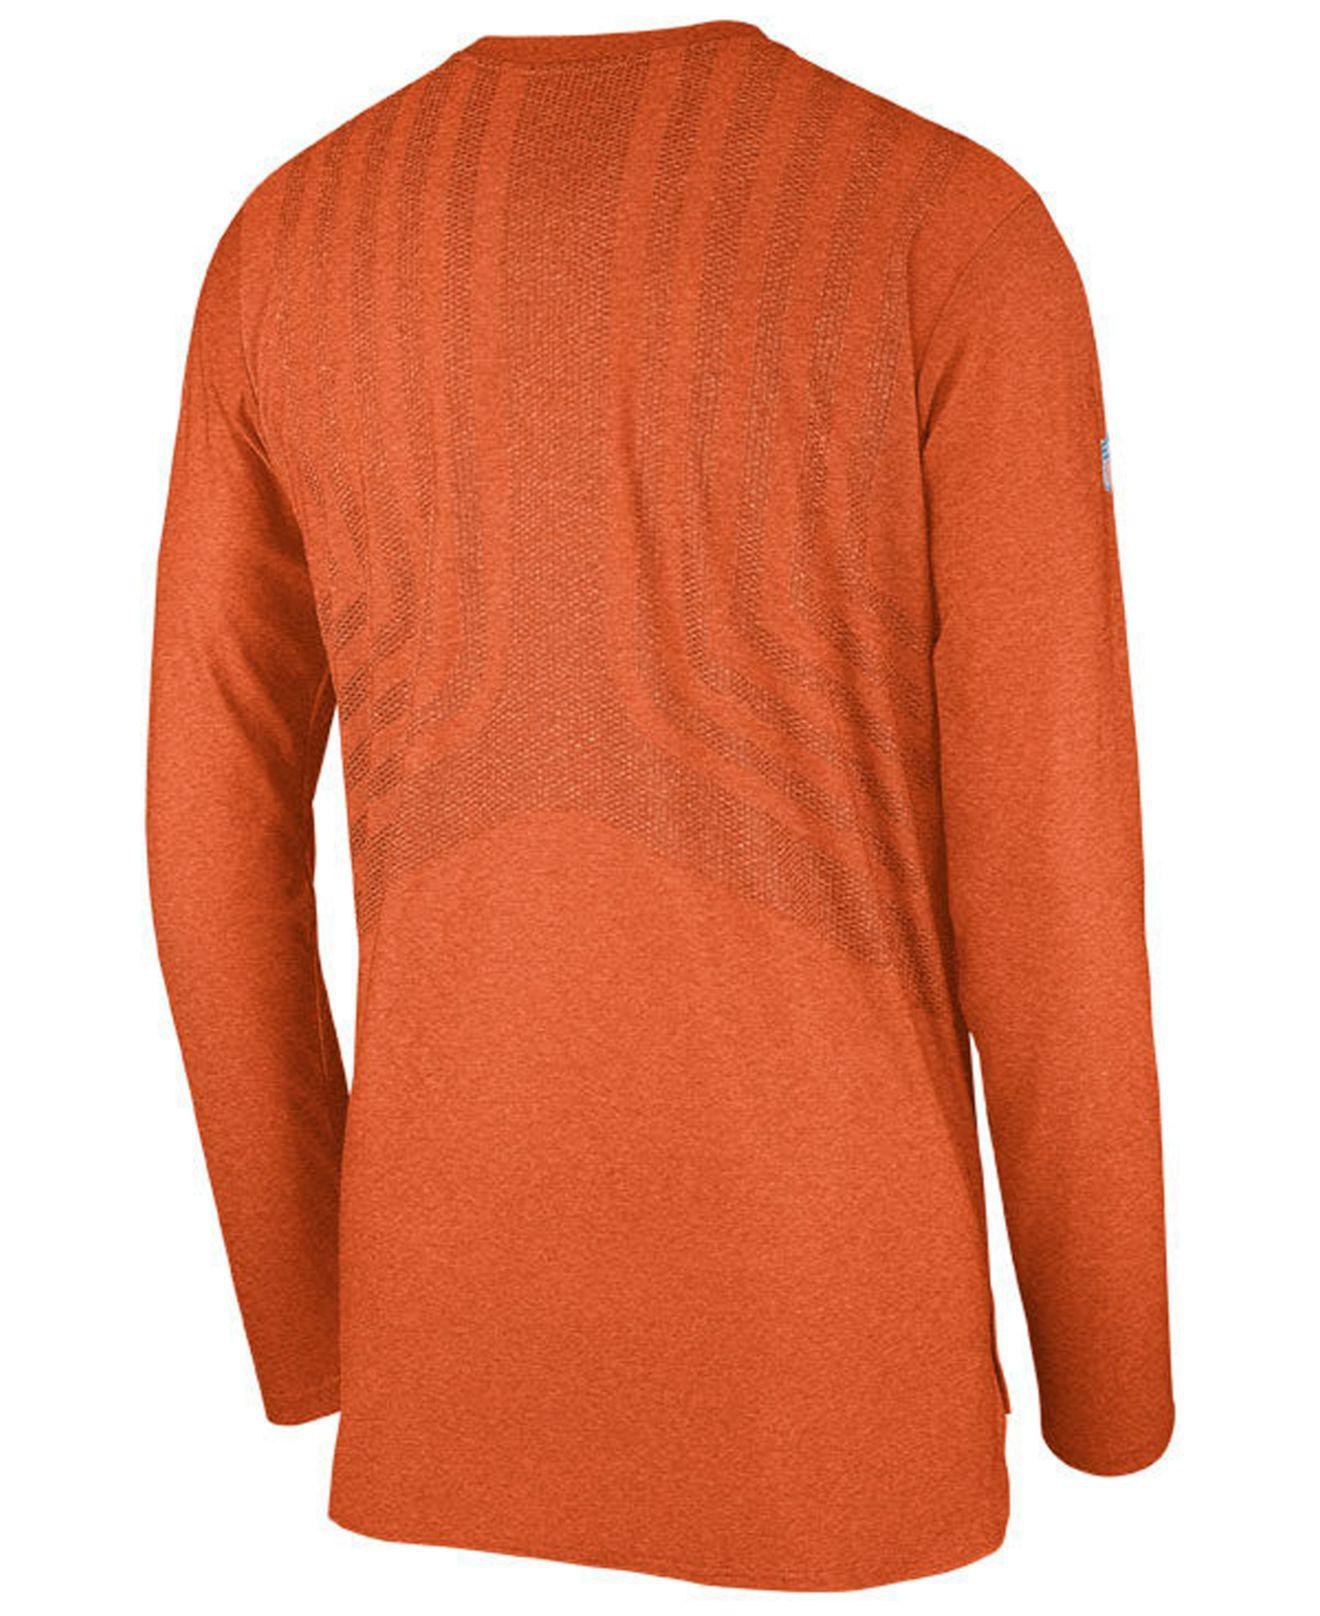 Lyst - Nike Cincinnati Bengals Player Long Sleeve Top in Orange for Men 13f4940c3